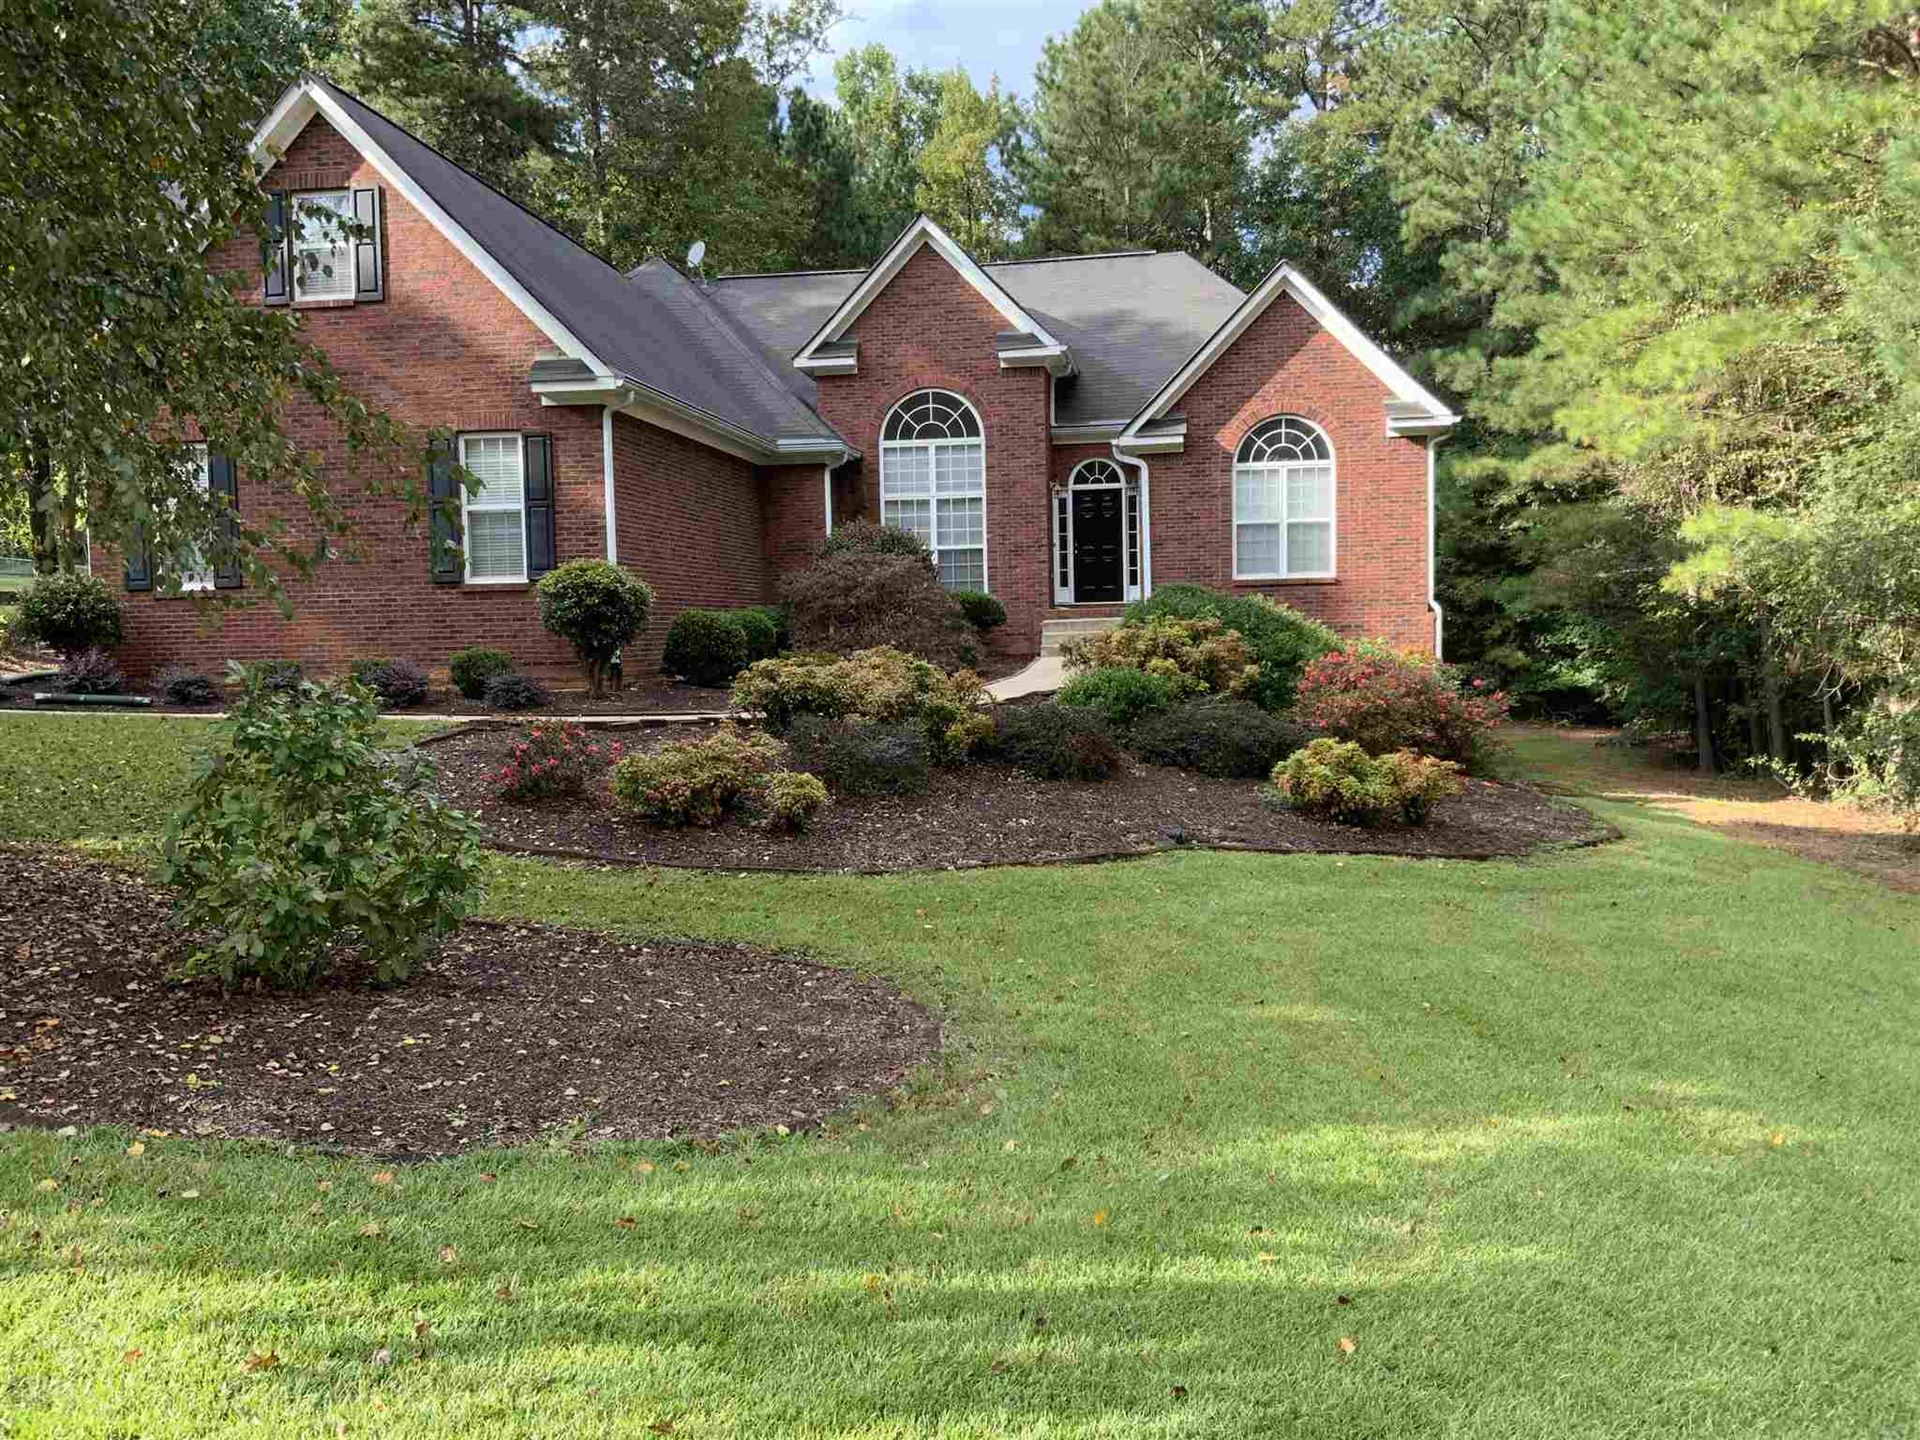 25 Barrington Creek Way, Sharpsburg, GA 30277 - MLS#: 8866013